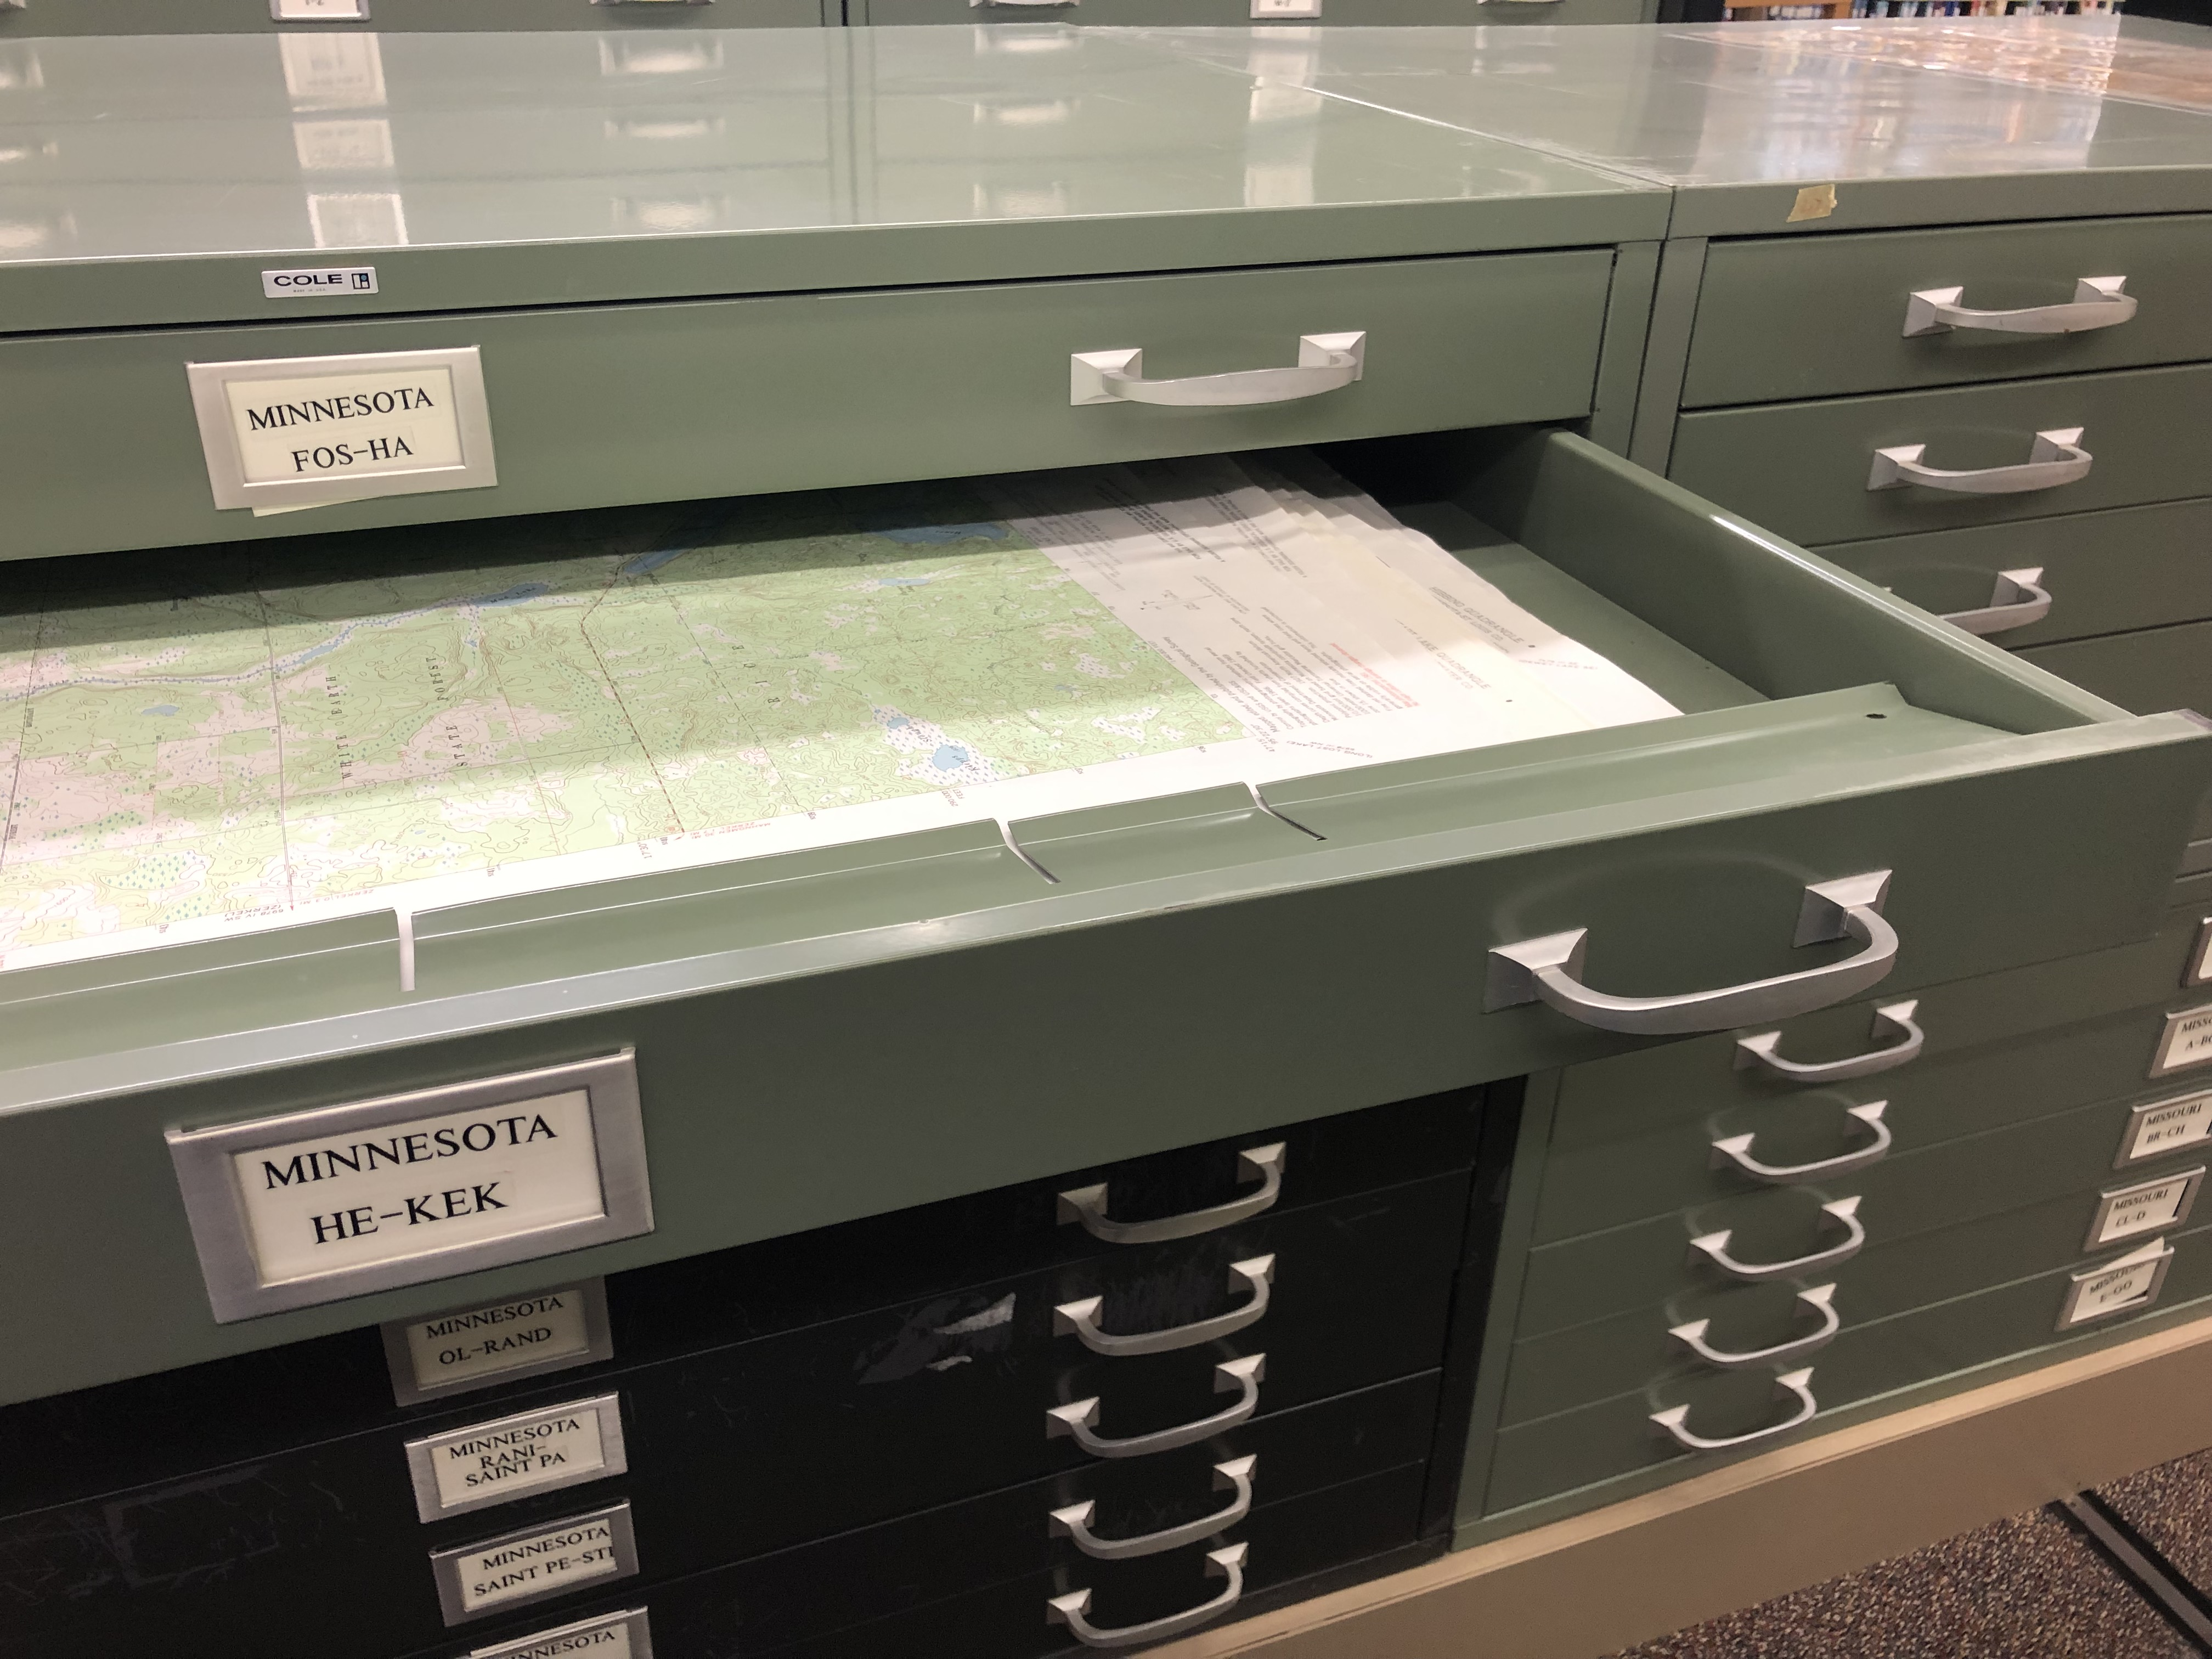 Open drawer showing map of Minnesota